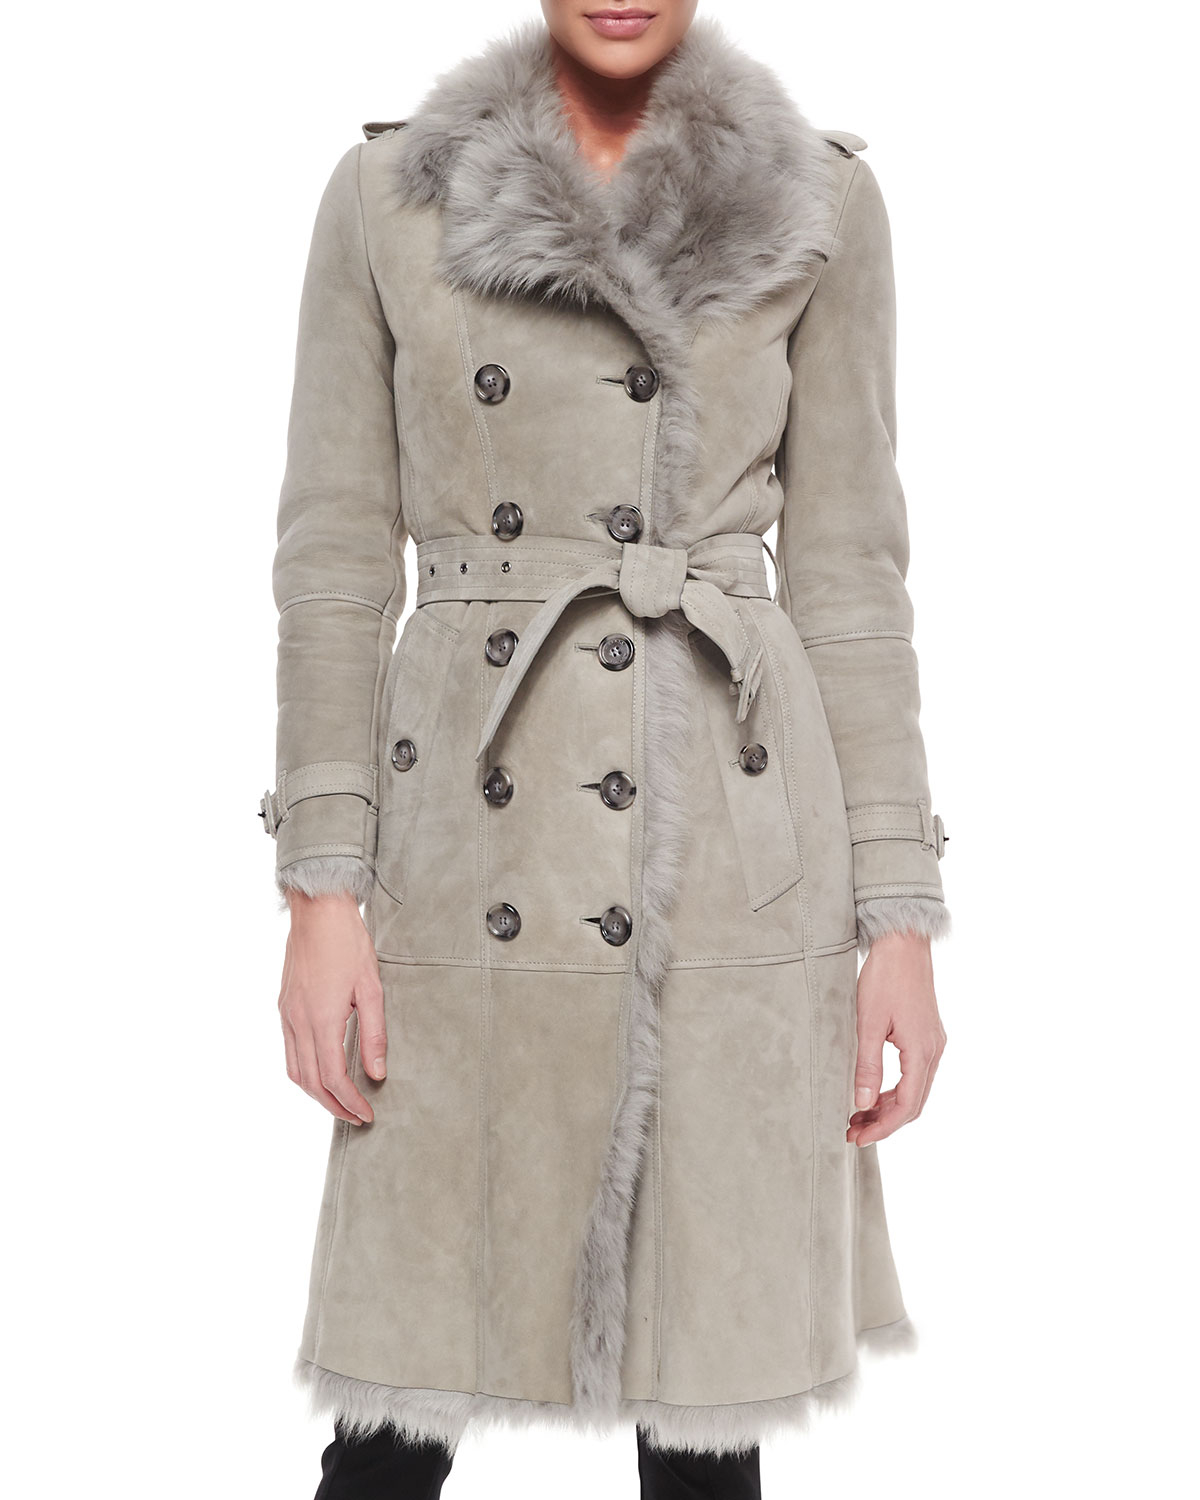 Burberry Double-Breasted Shearling Trench Coat in Gray | Lyst